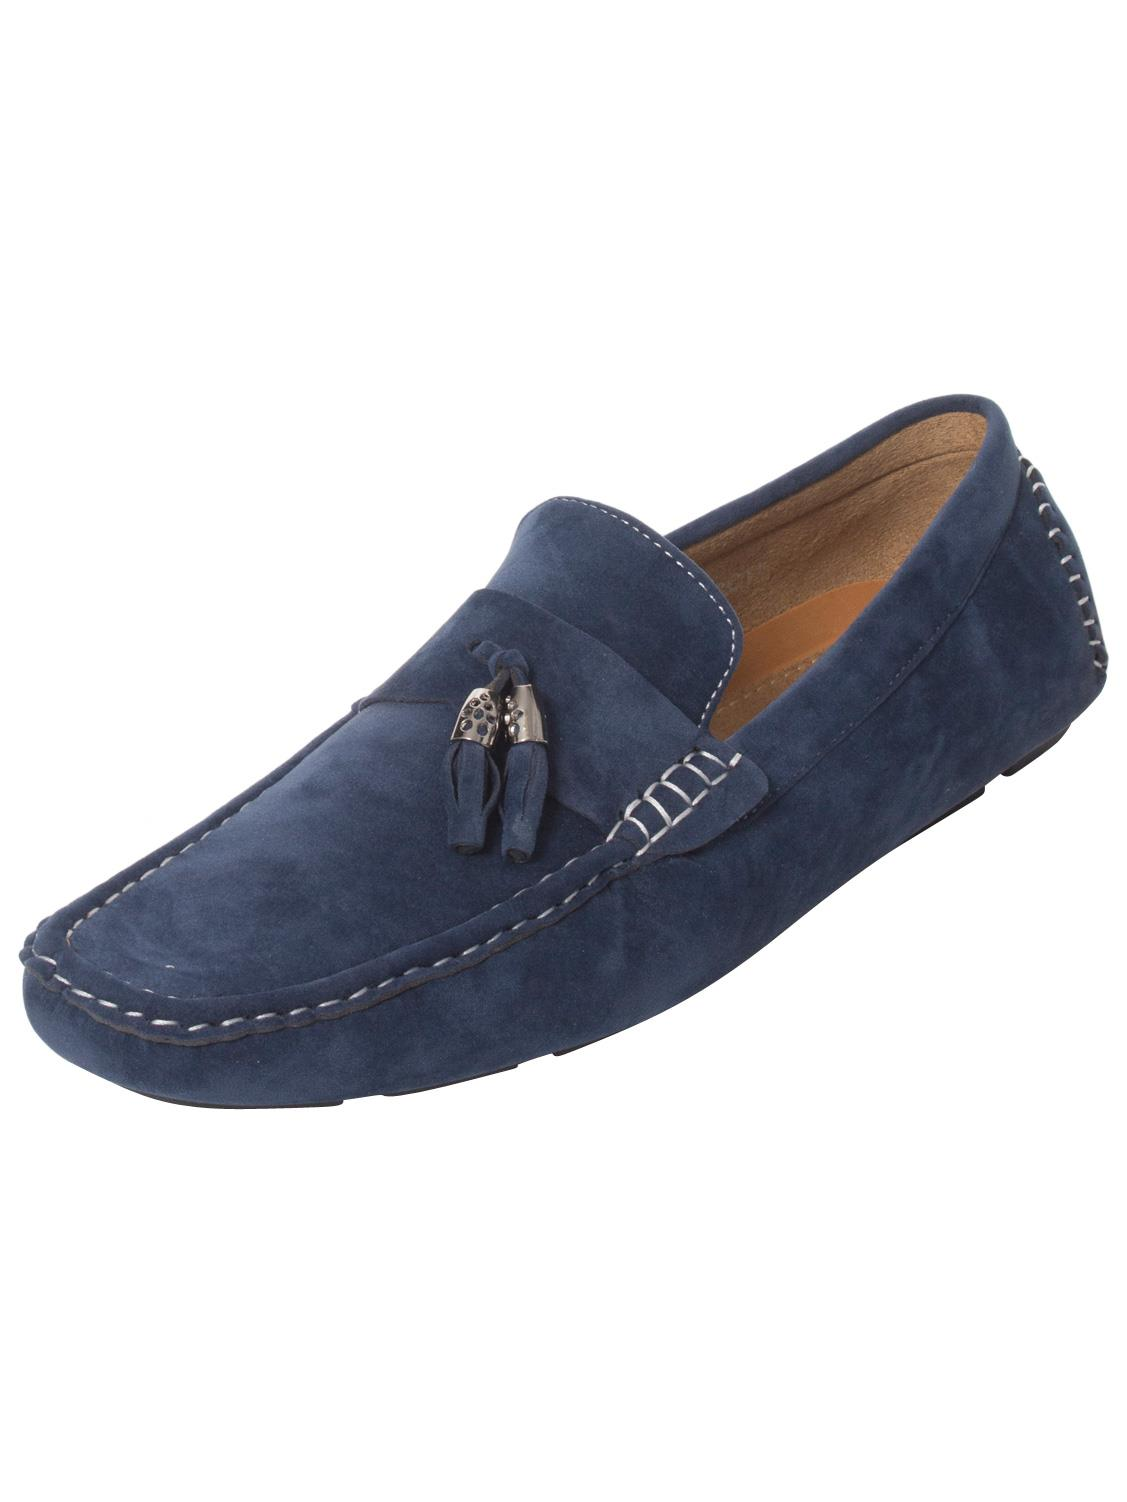 Mens-Slip-Ons-Shoes-Boat-Deck-Driving-Smart-Buckle-Moccasins-Suede-Look-Loafers thumbnail 64